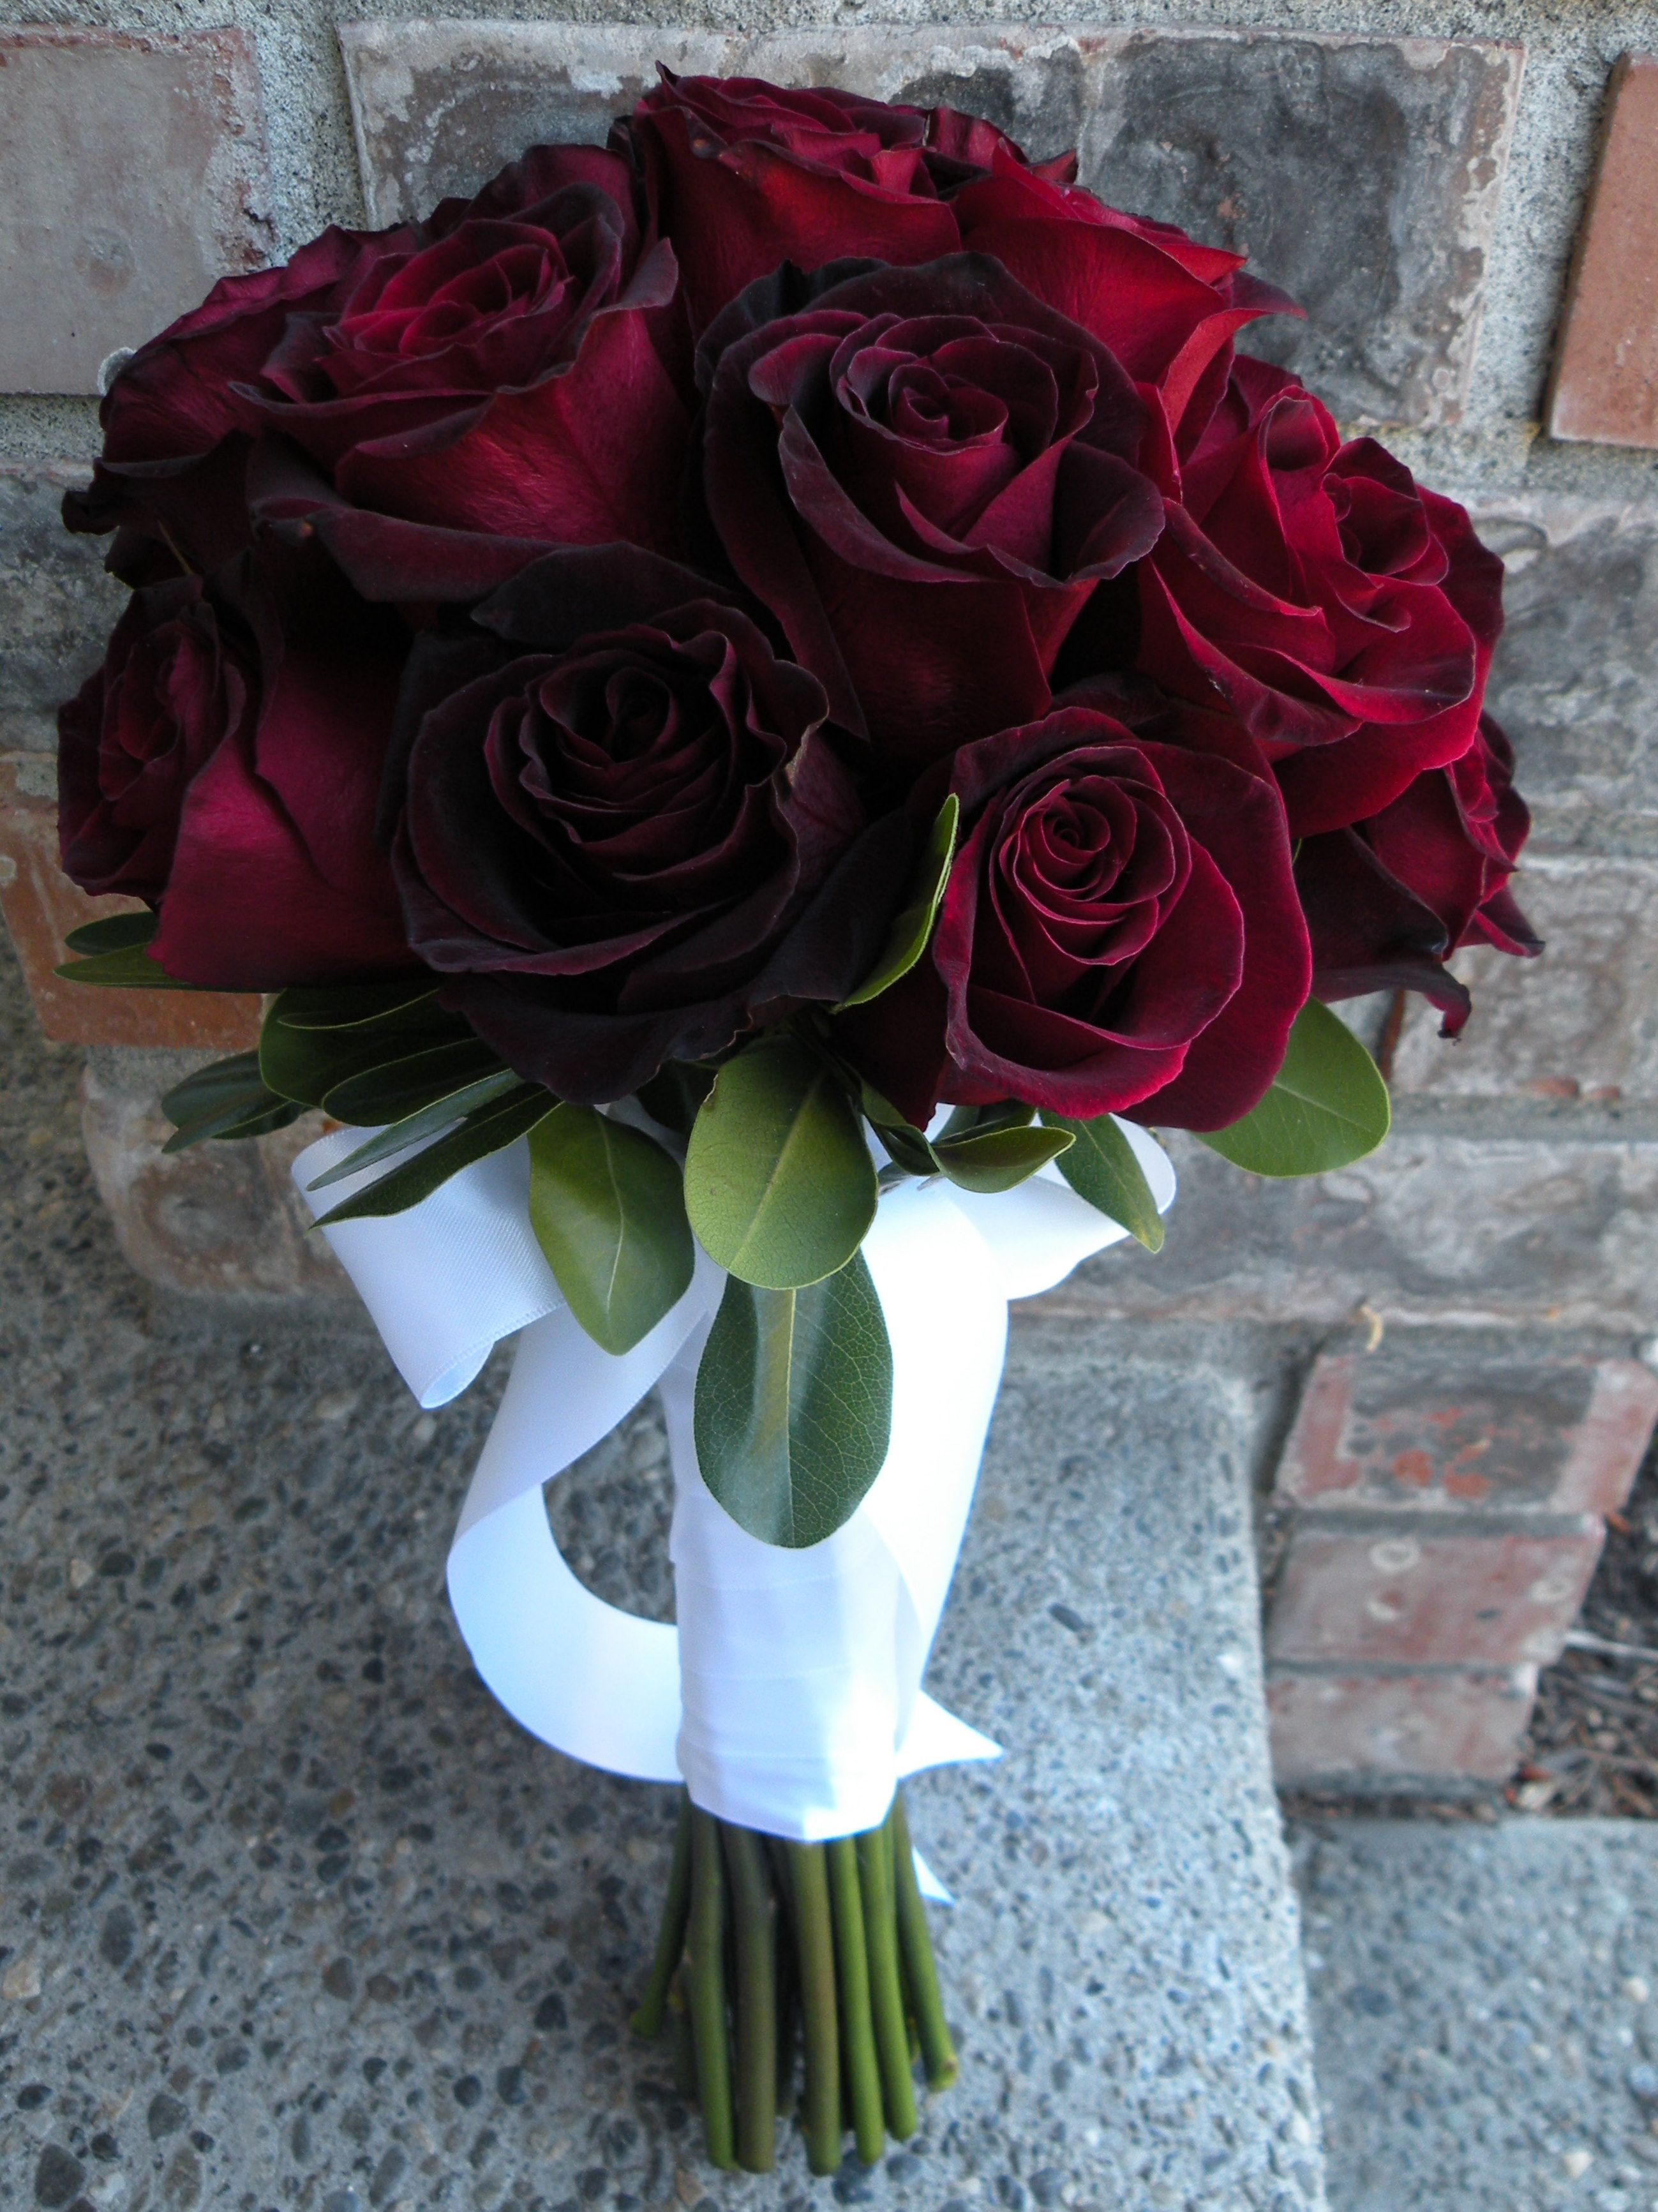 24 The Best Red Rose Bouquet Ideas Mawars Pinterest Red Rose